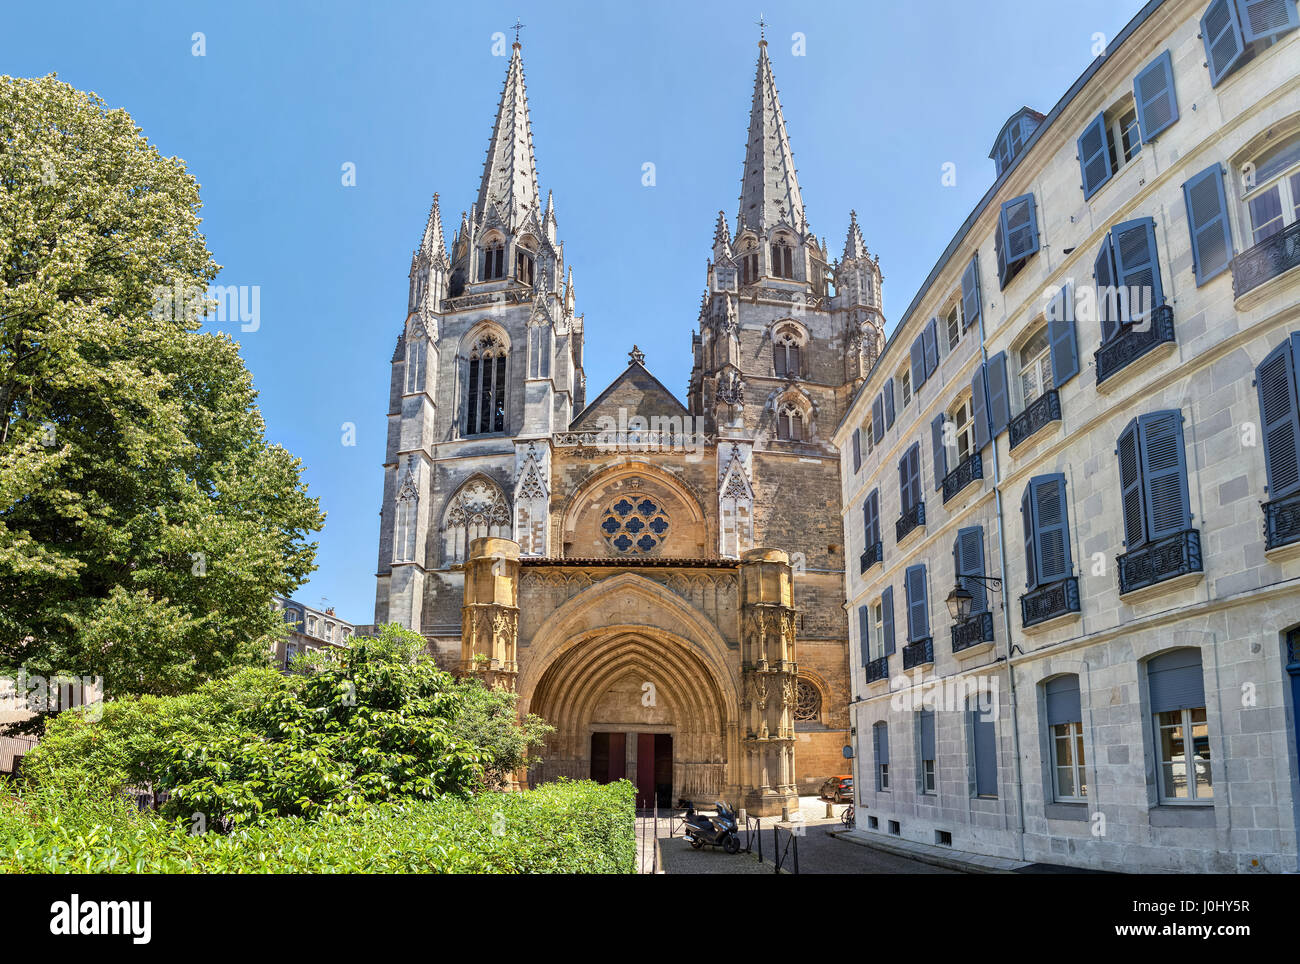 Gorhic facade of Sainte-Marie de Bayonne cathedral in Bayonne, Nouvelle Aquitaine, France - Stock Image